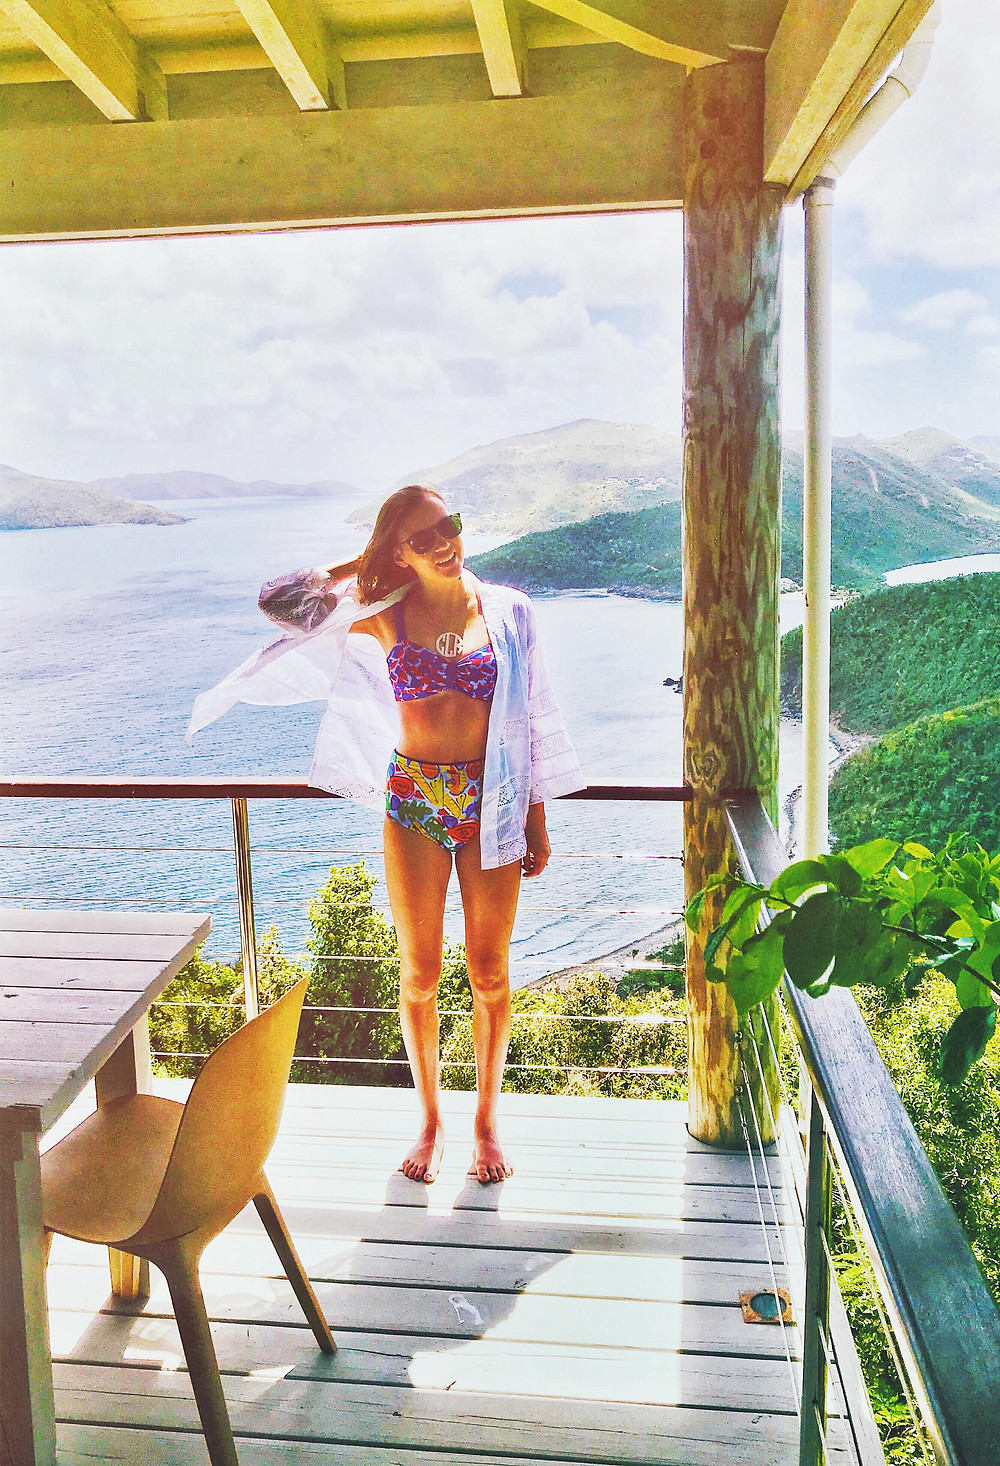 Standing on a porch in Tortola, British Virgin Islands, wearing an Anthropologie high waisted bikini overlooking the Caribbean.